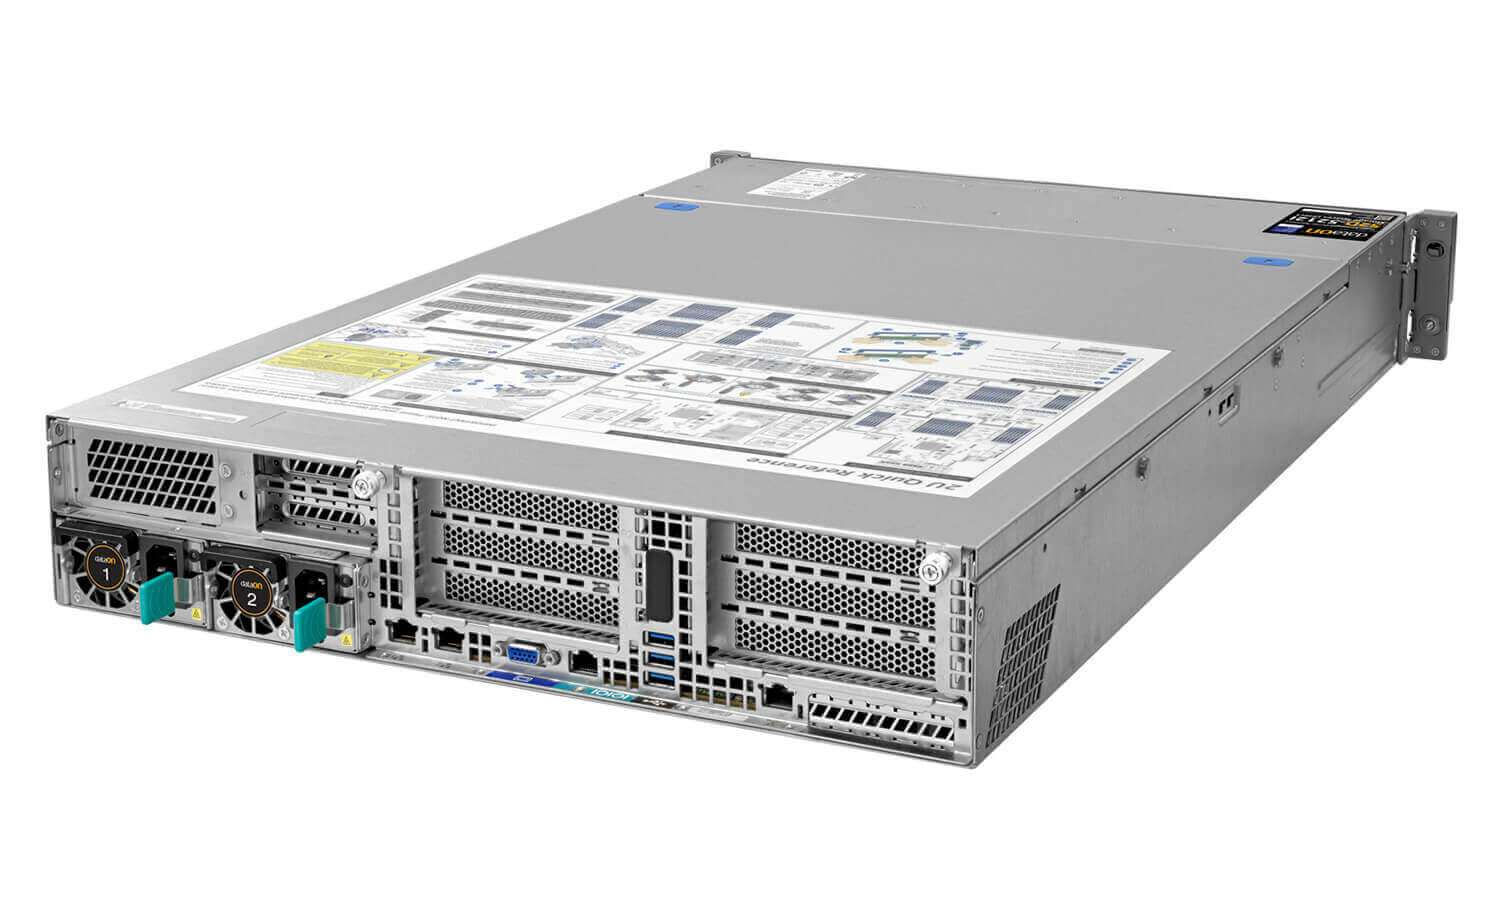 allsystems-producten-hyperconverged-systems-DataON_S2D-5208i_Rear_Side_View